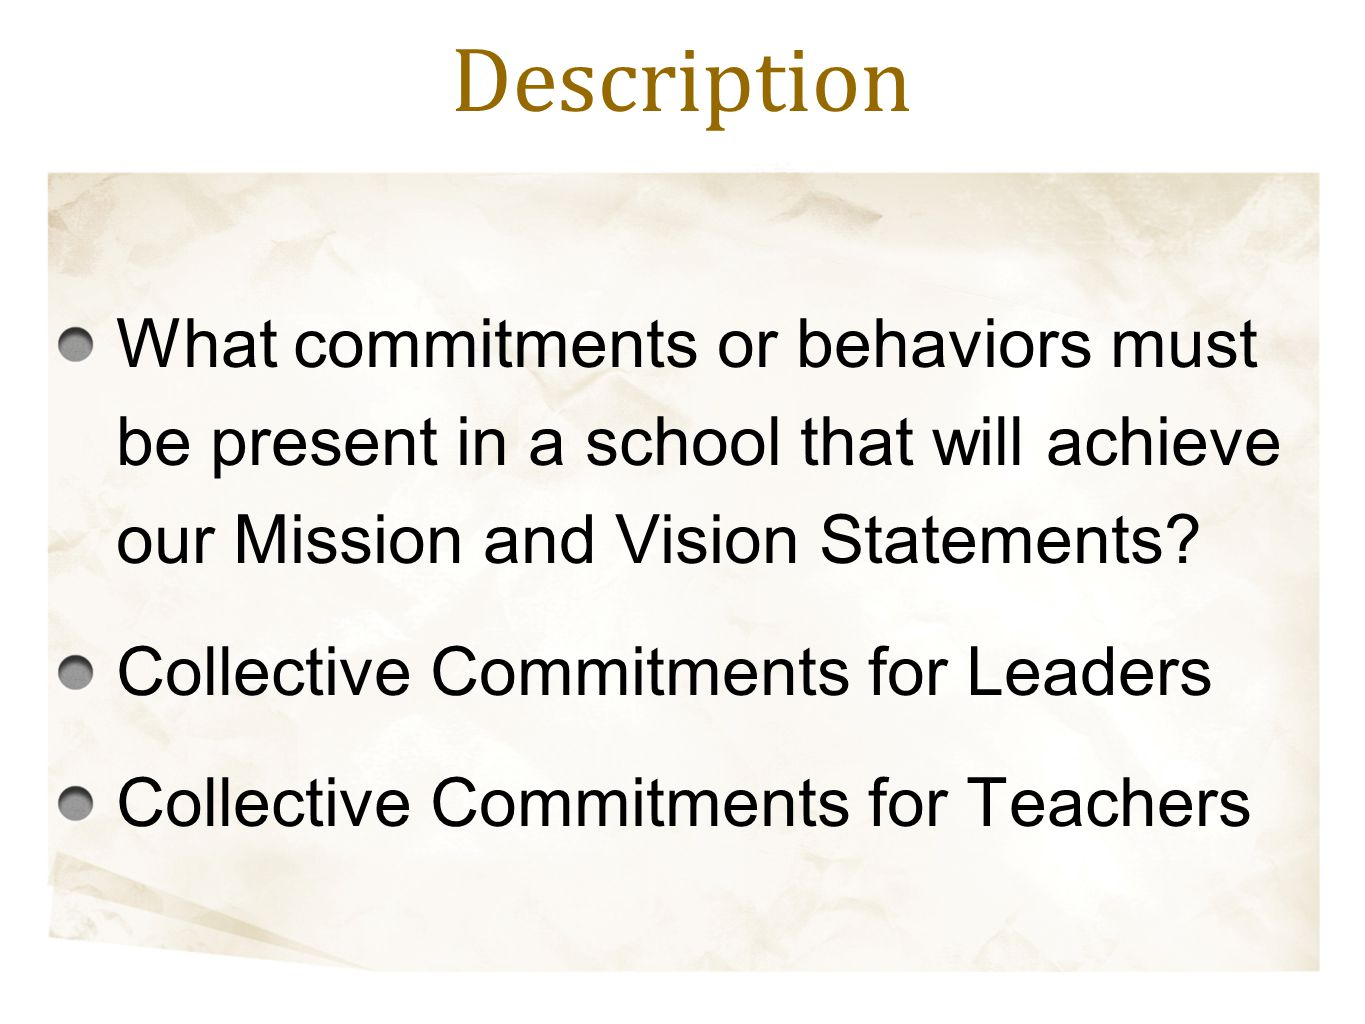 What commitments or behaviors must be present in a school that will achieve our Mission and Vision Statements? Collective Commitments for Leaders Coll